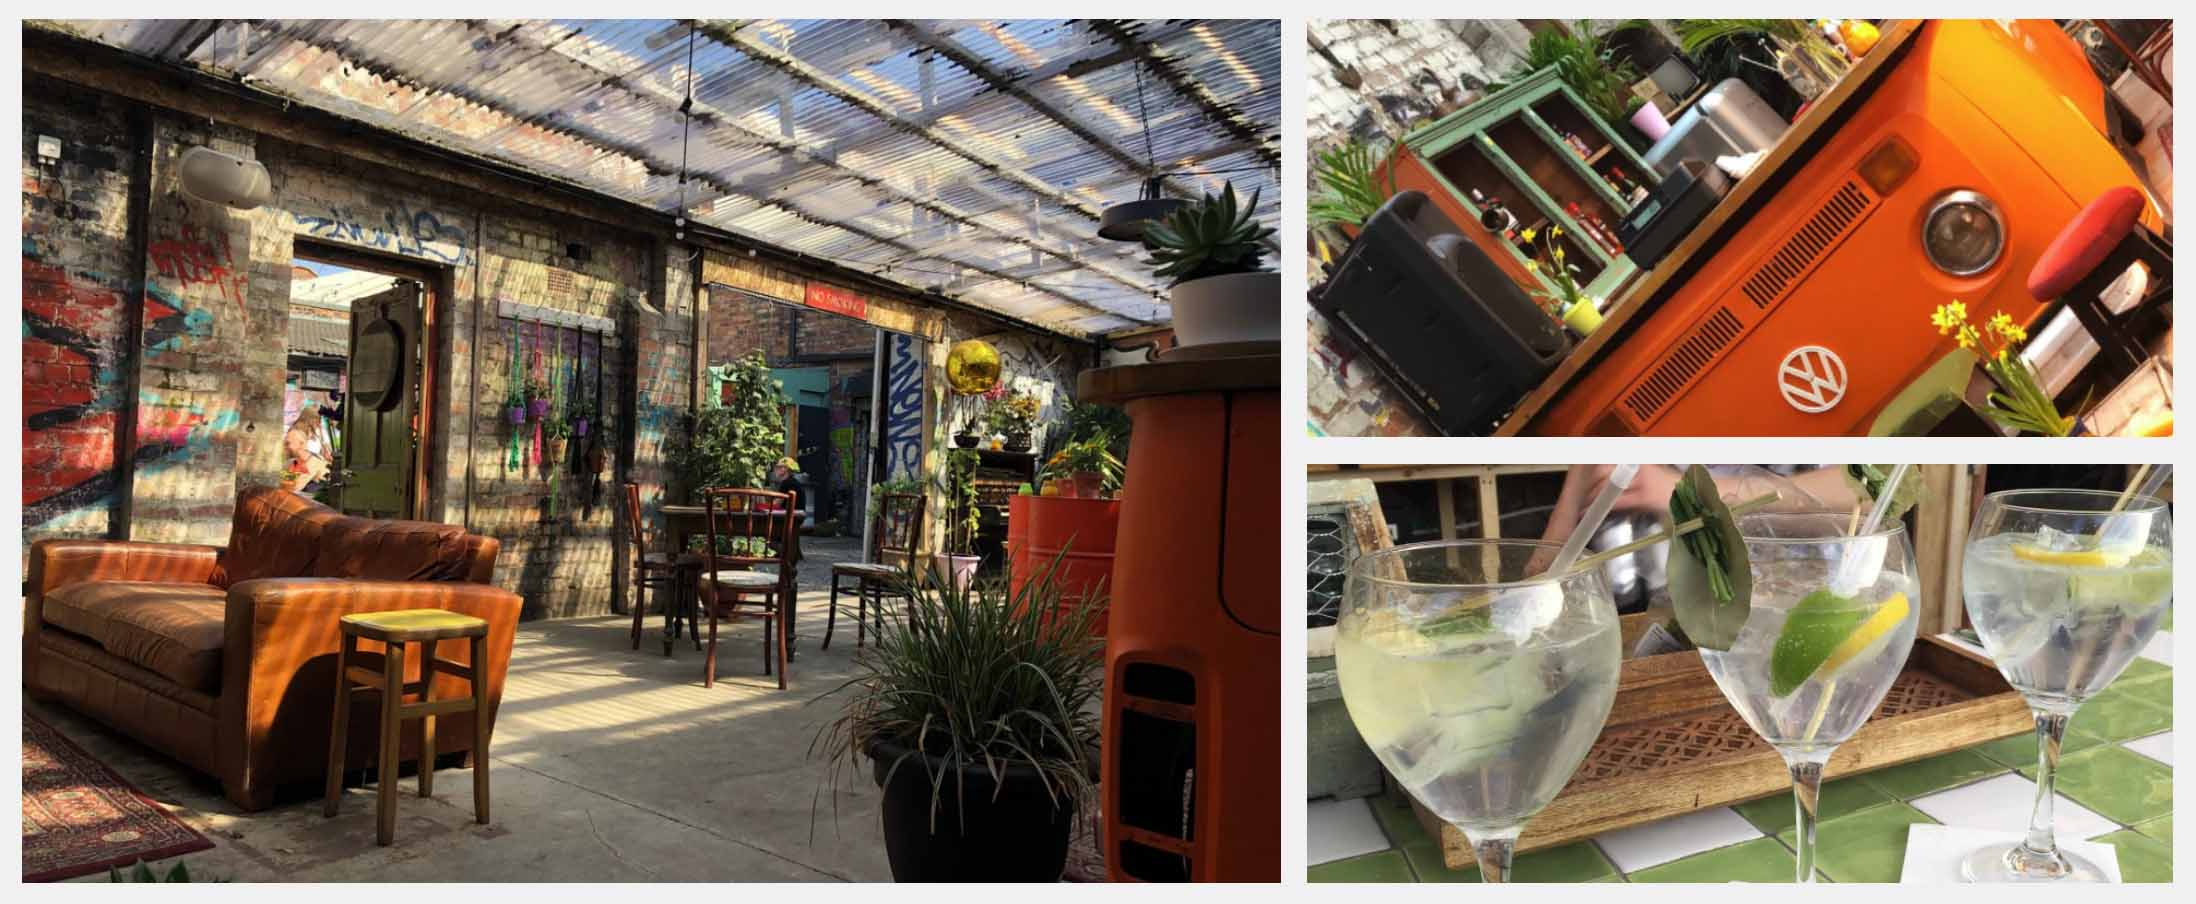 Best Beer Gardens in Liverpool - Botanical Gardens